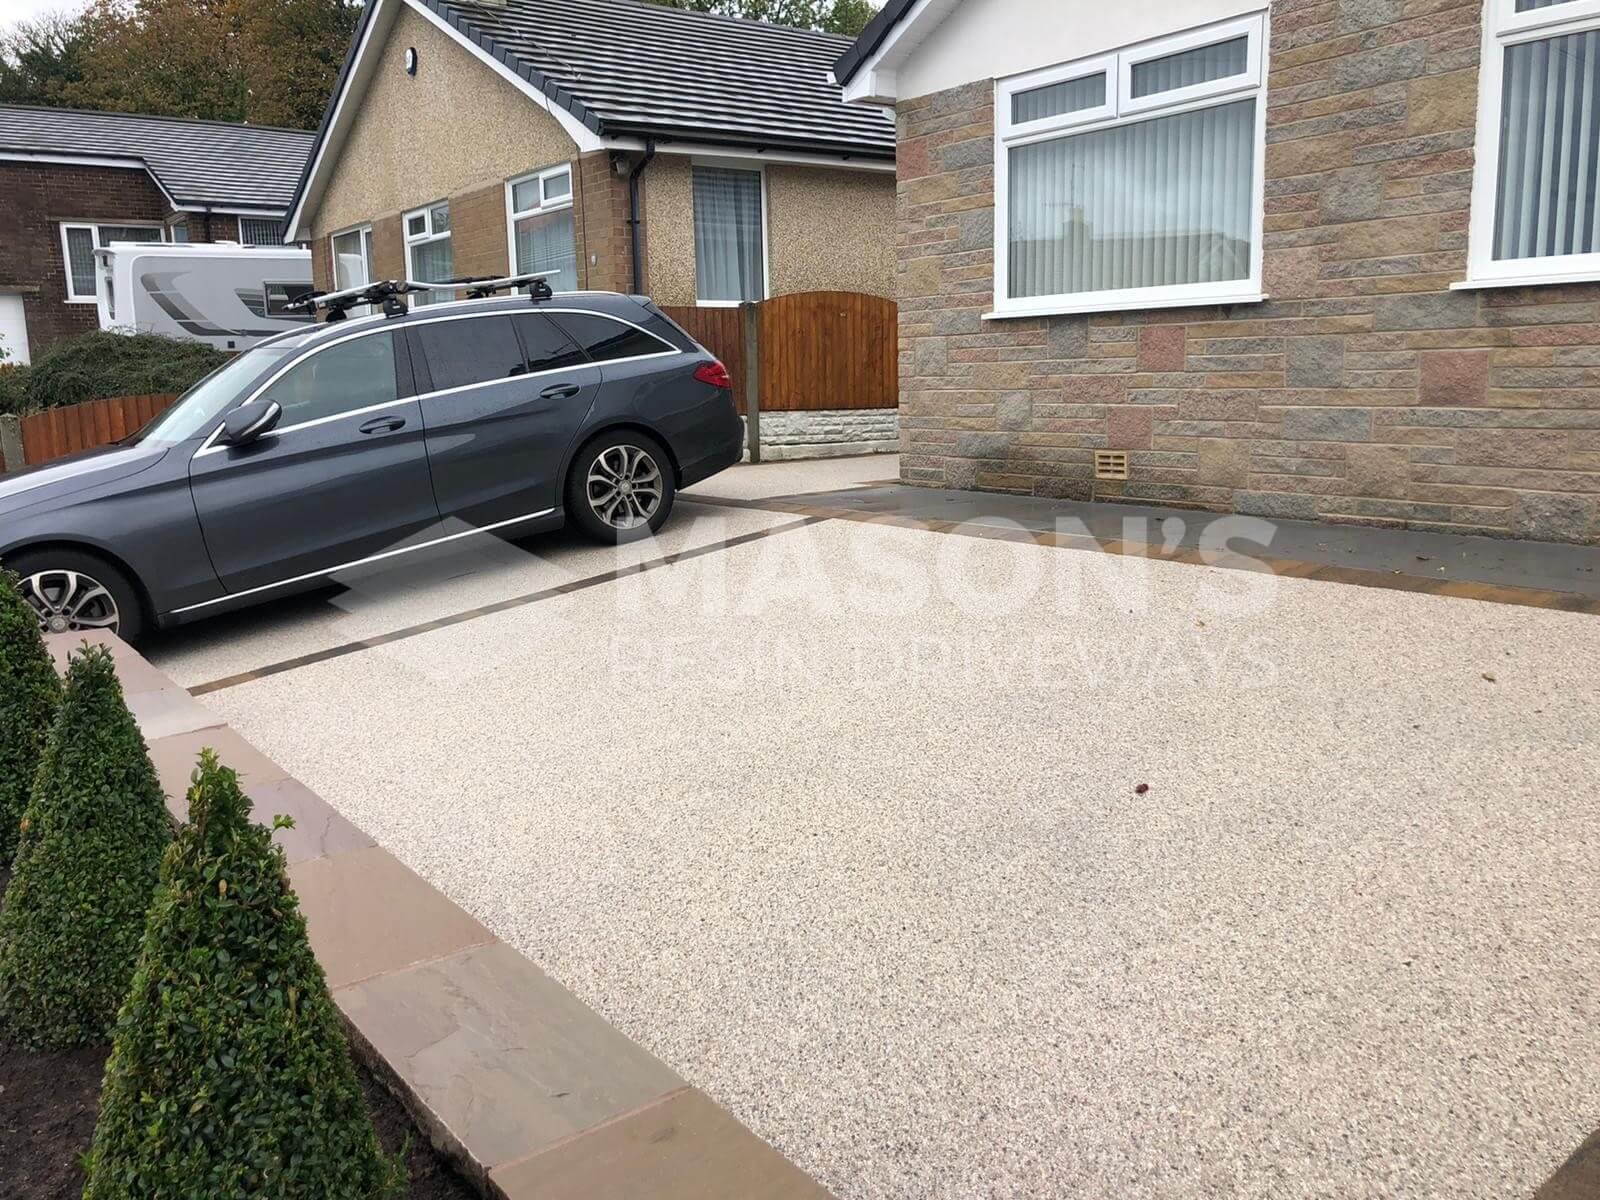 Another view of car on Resin Bound Driveway in Preston, Lancashire